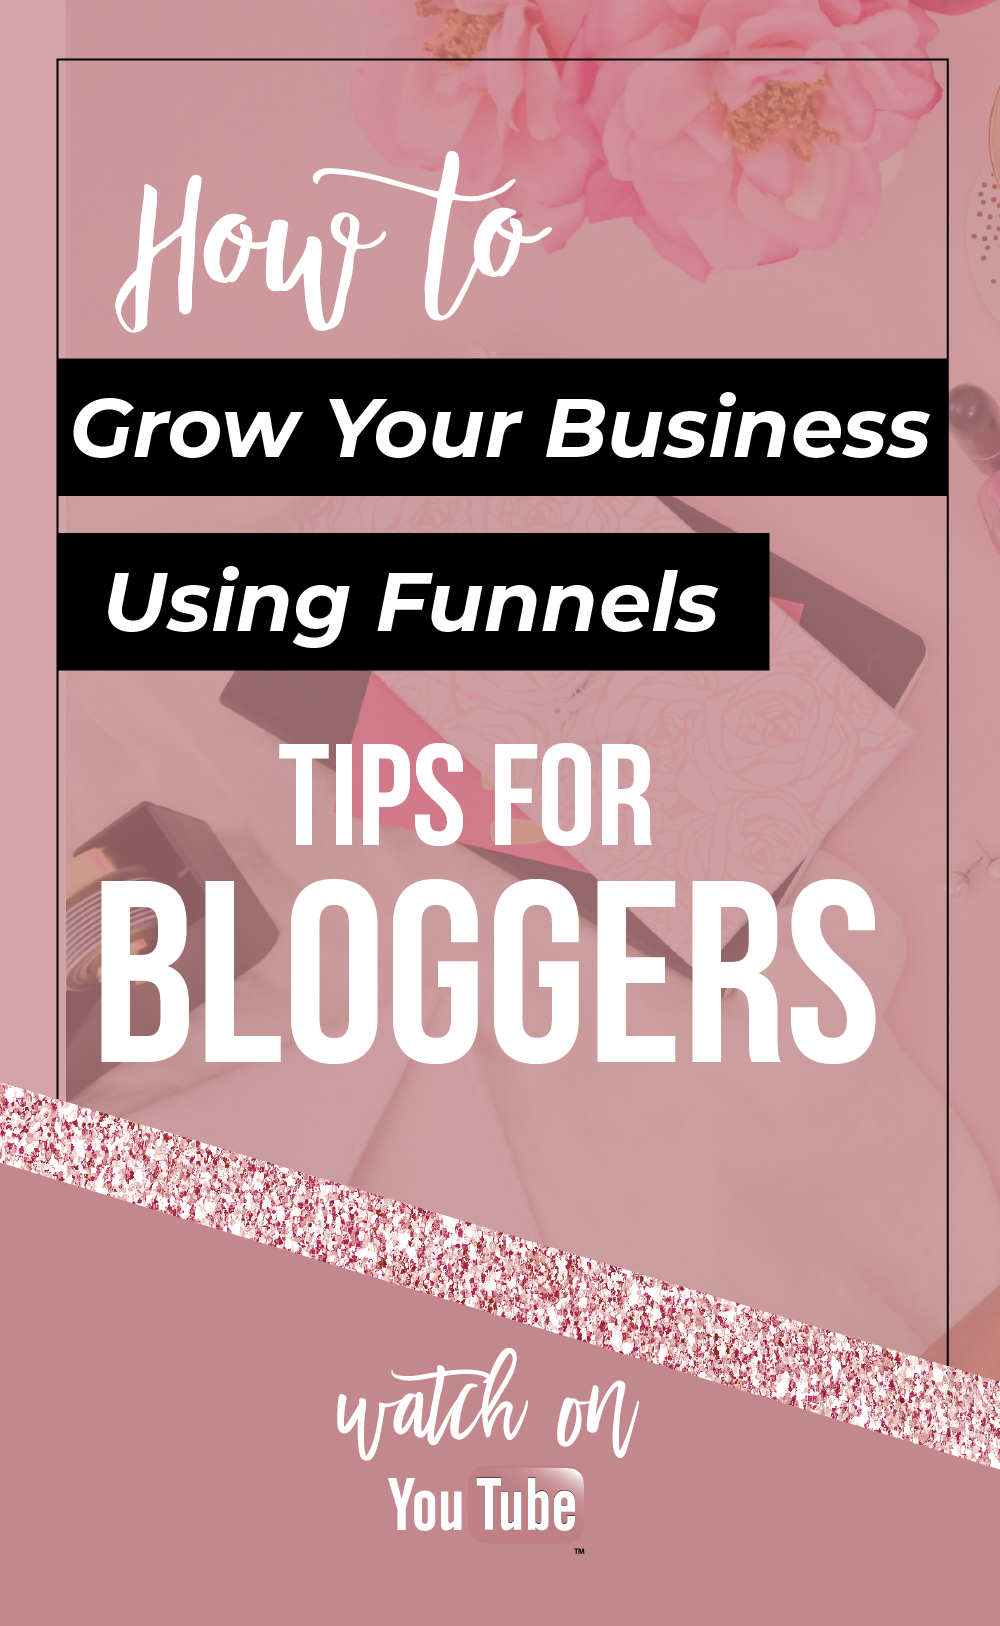 Grow Your Business with Funnels